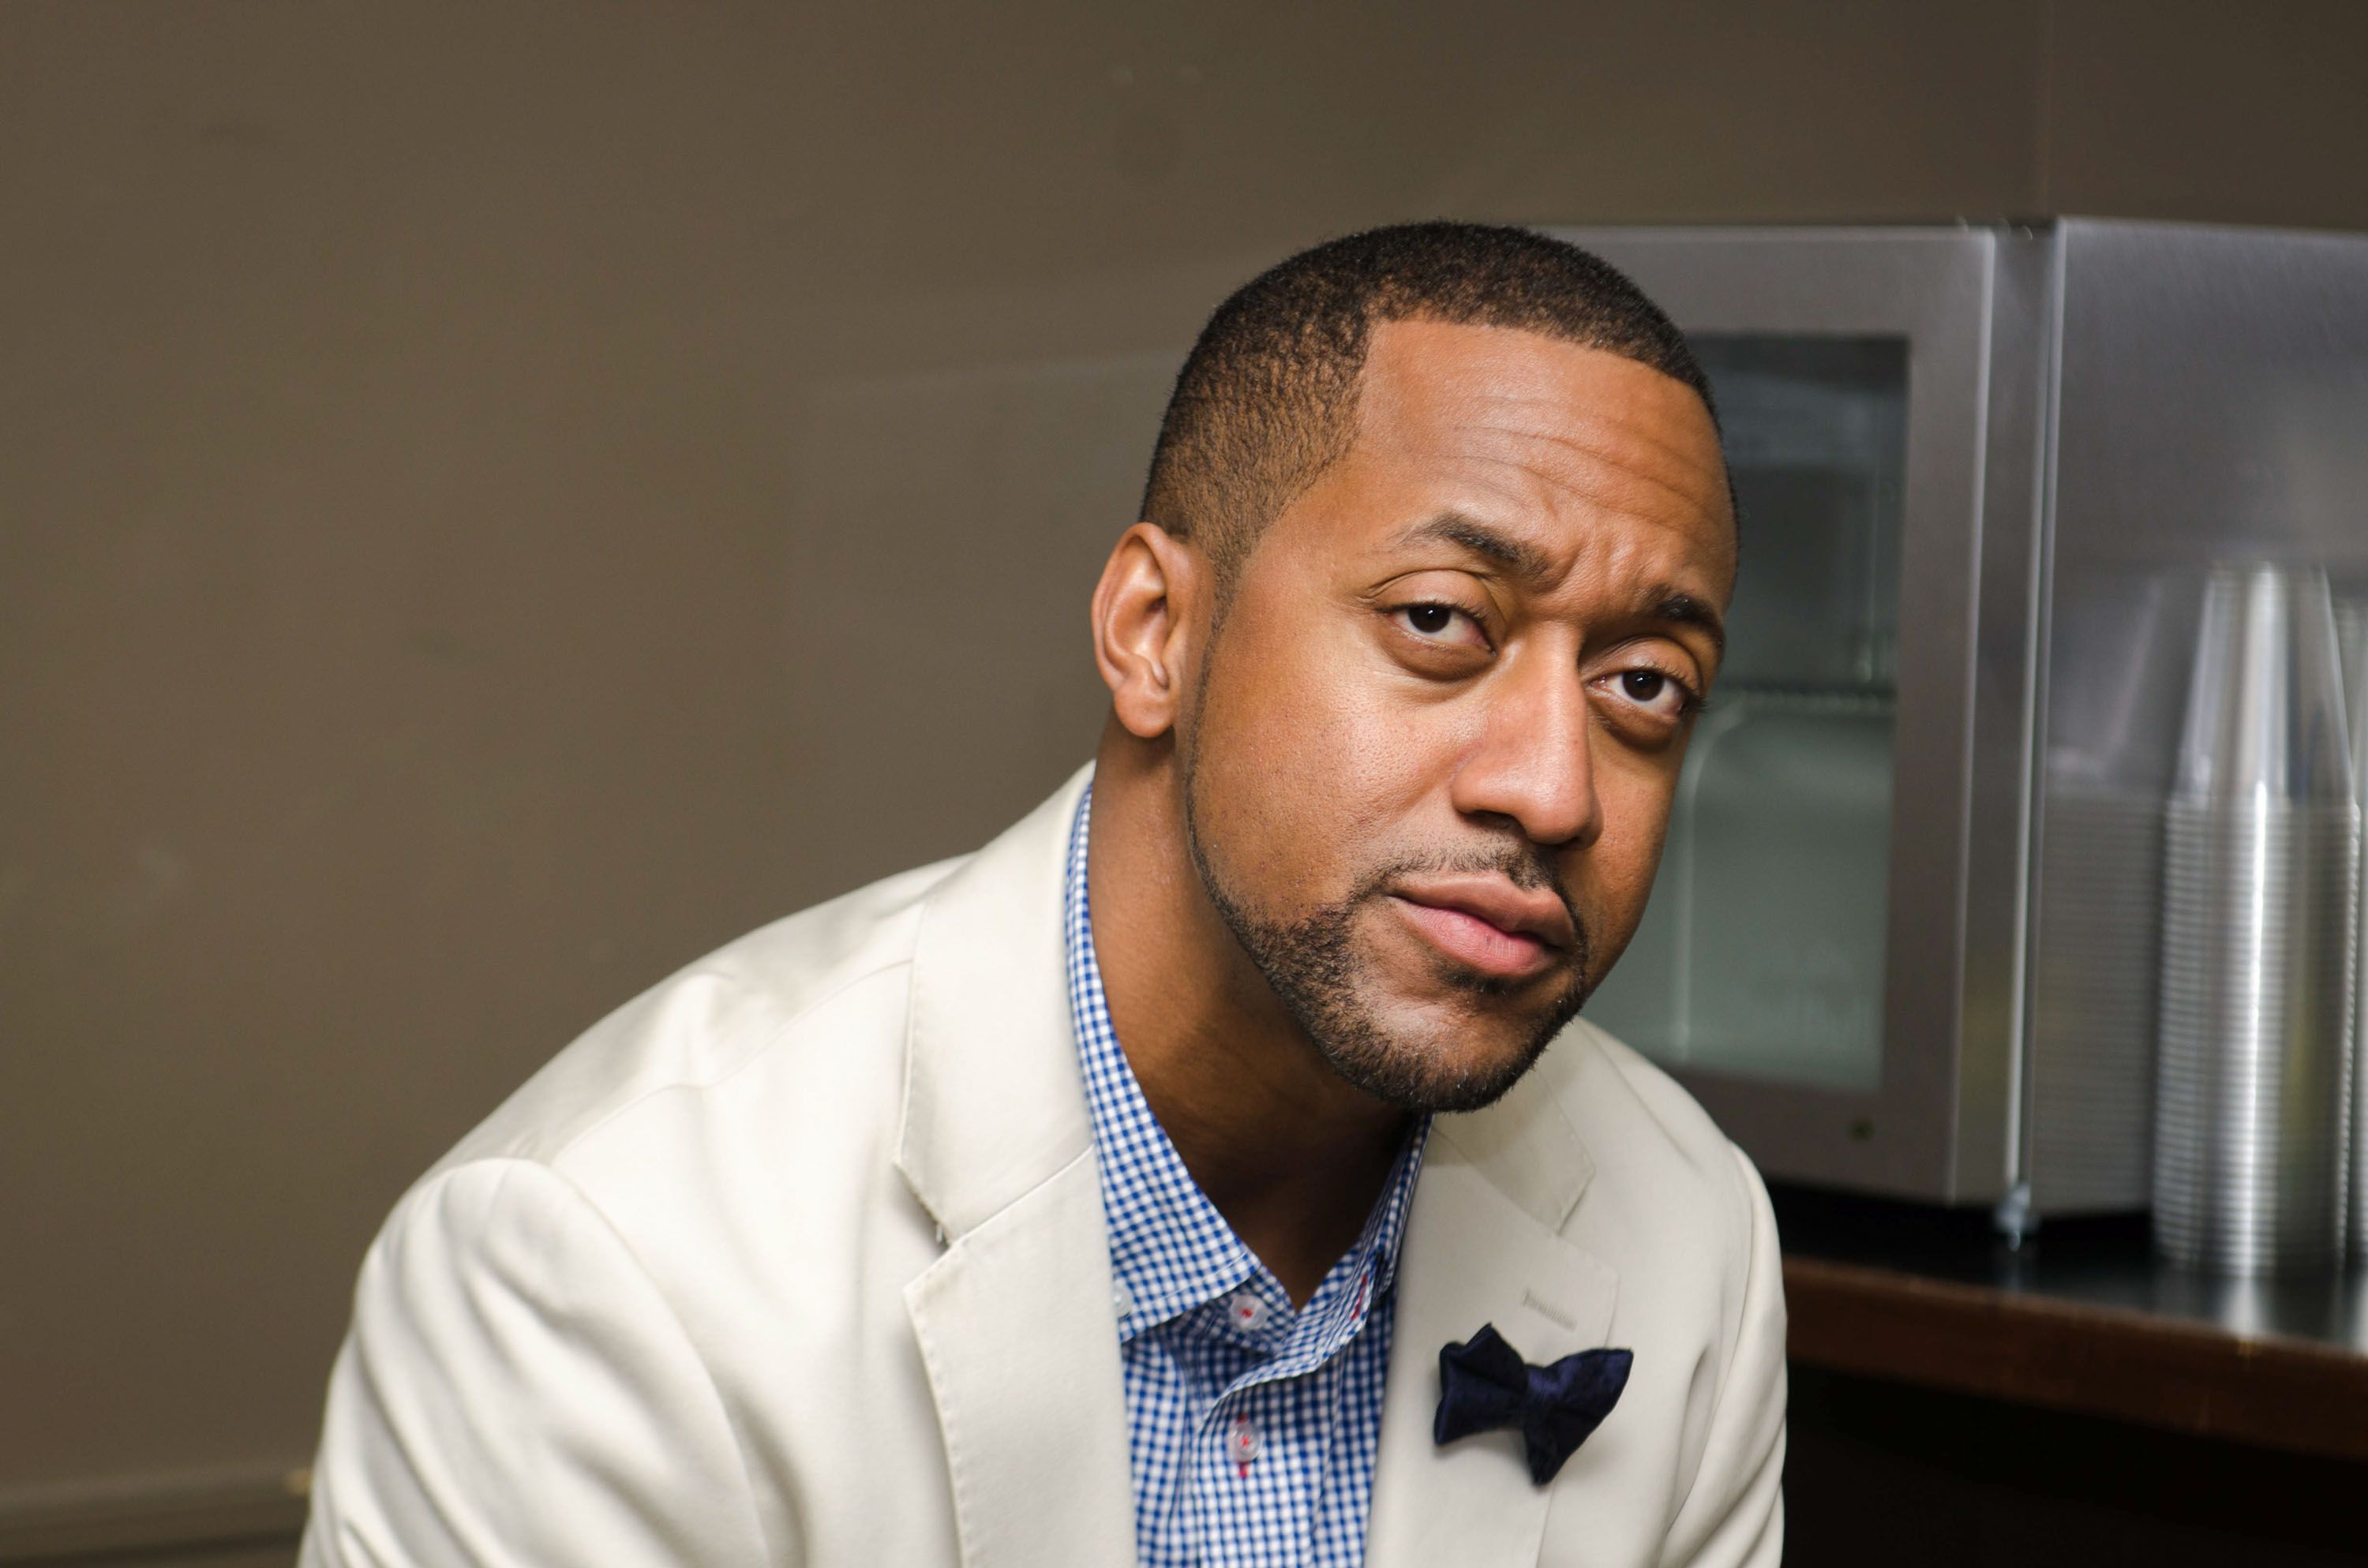 Jaleel White during the 6th Annual Agency Quiz Bowl at Stage 48 on October 16, 2014 in New York City. | Source: Getty Images